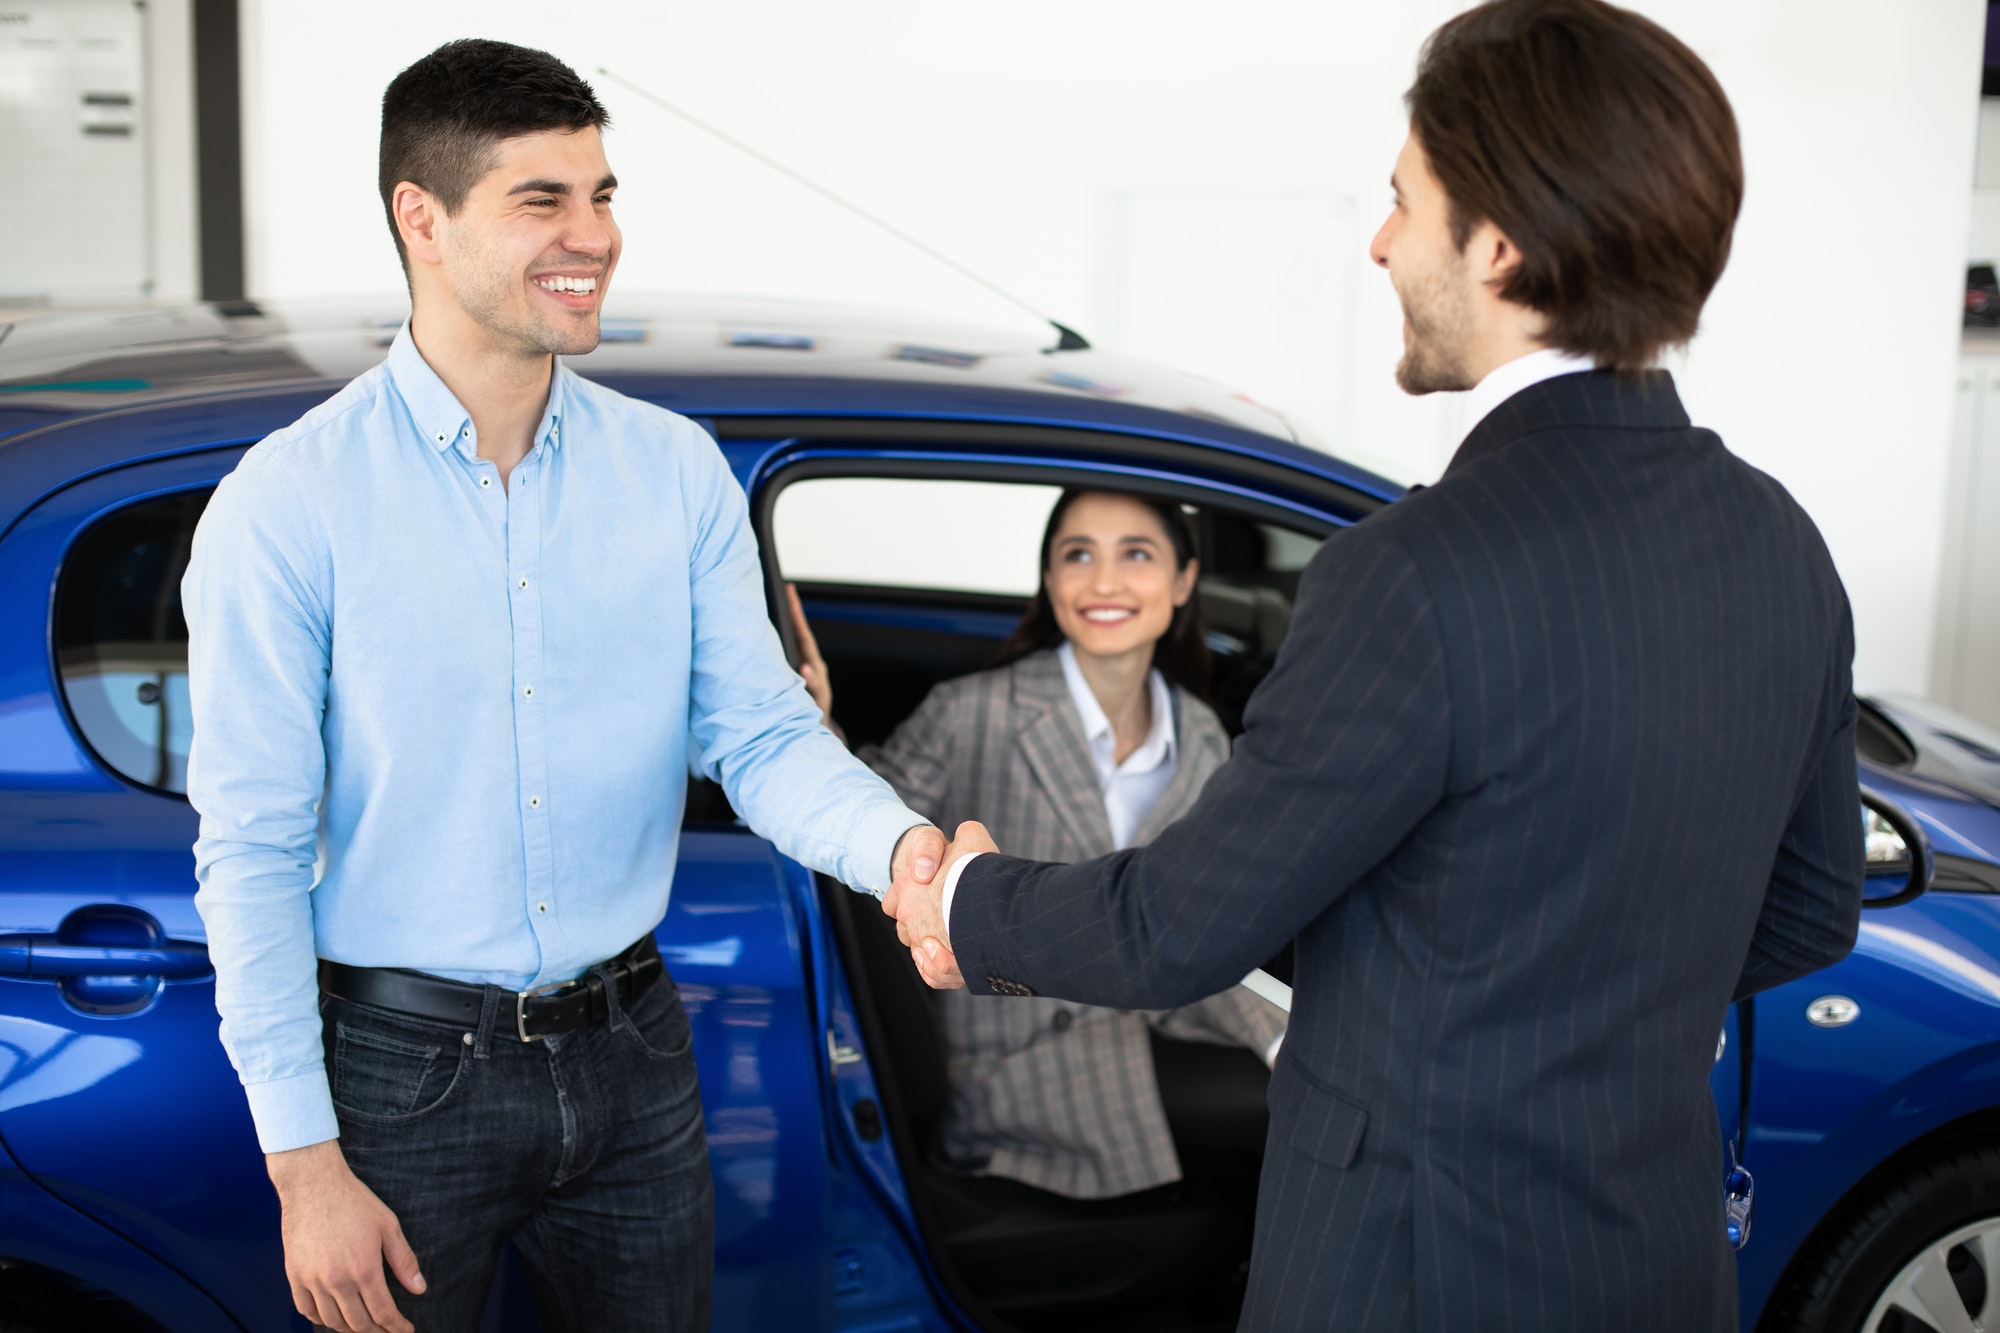 Man Shaking Hands With Car Sales Manager In Dealership Store